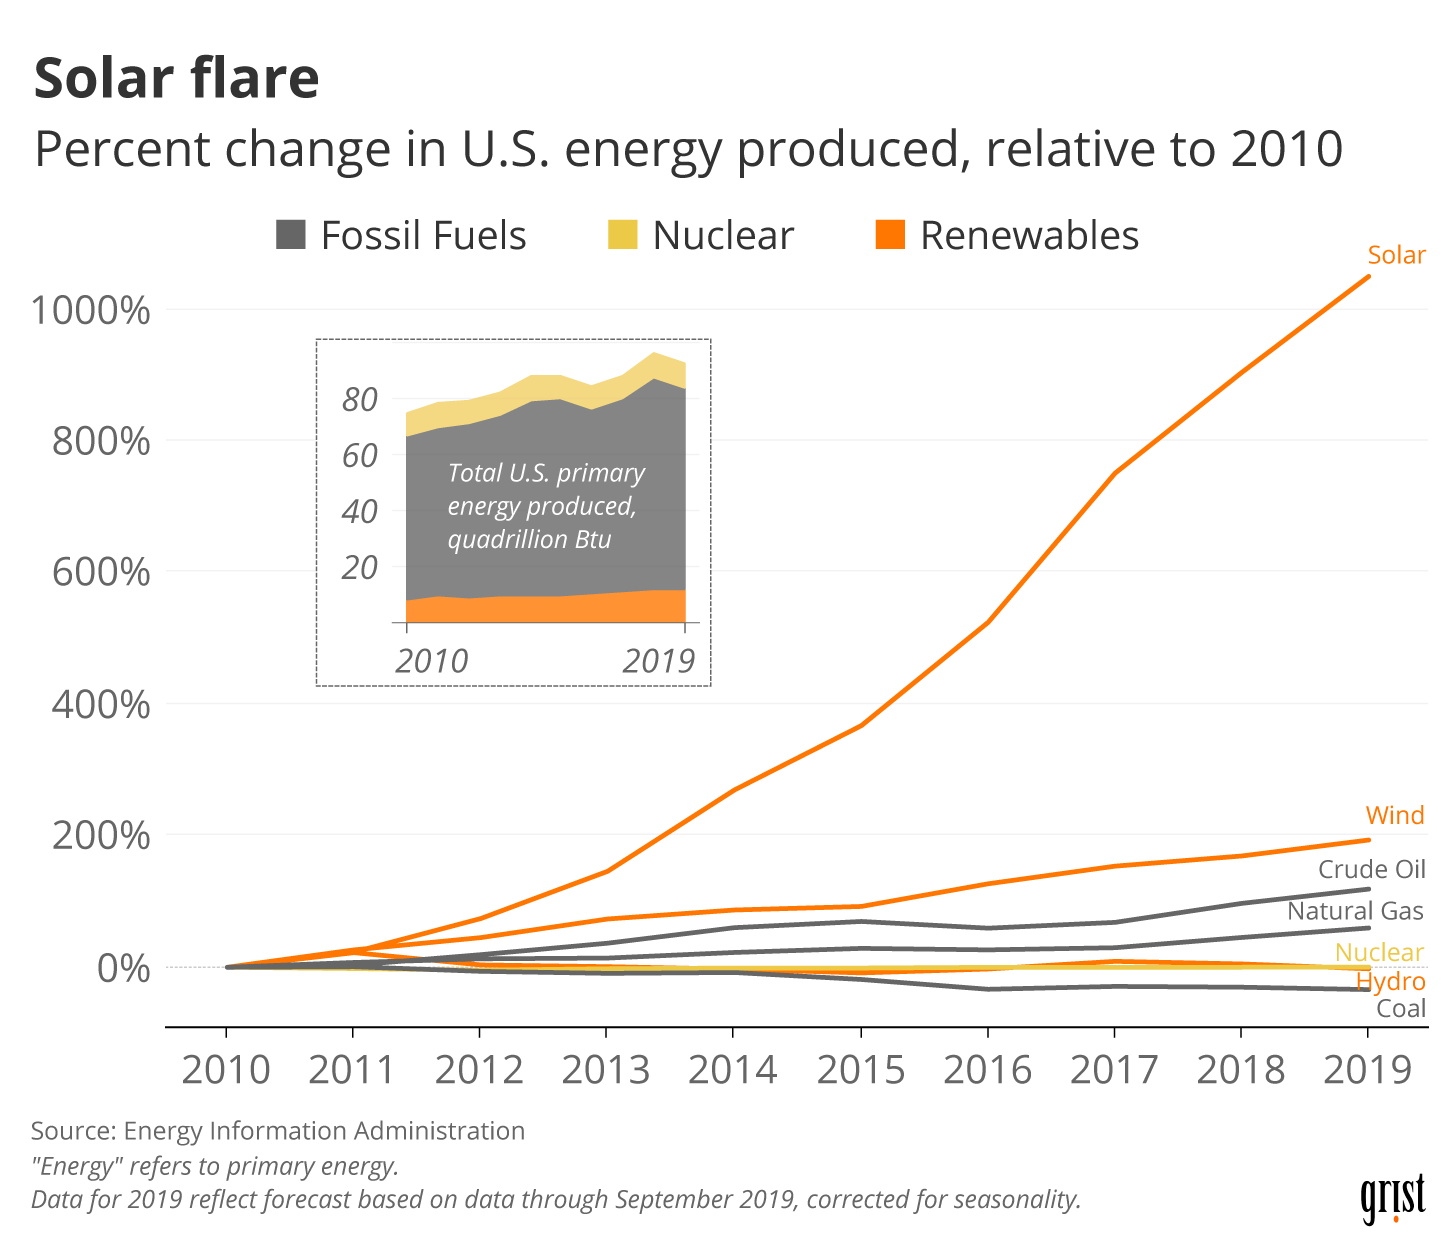 A line chart showing the percent change in U.S. primary energy produced by source between 2010 and 2019